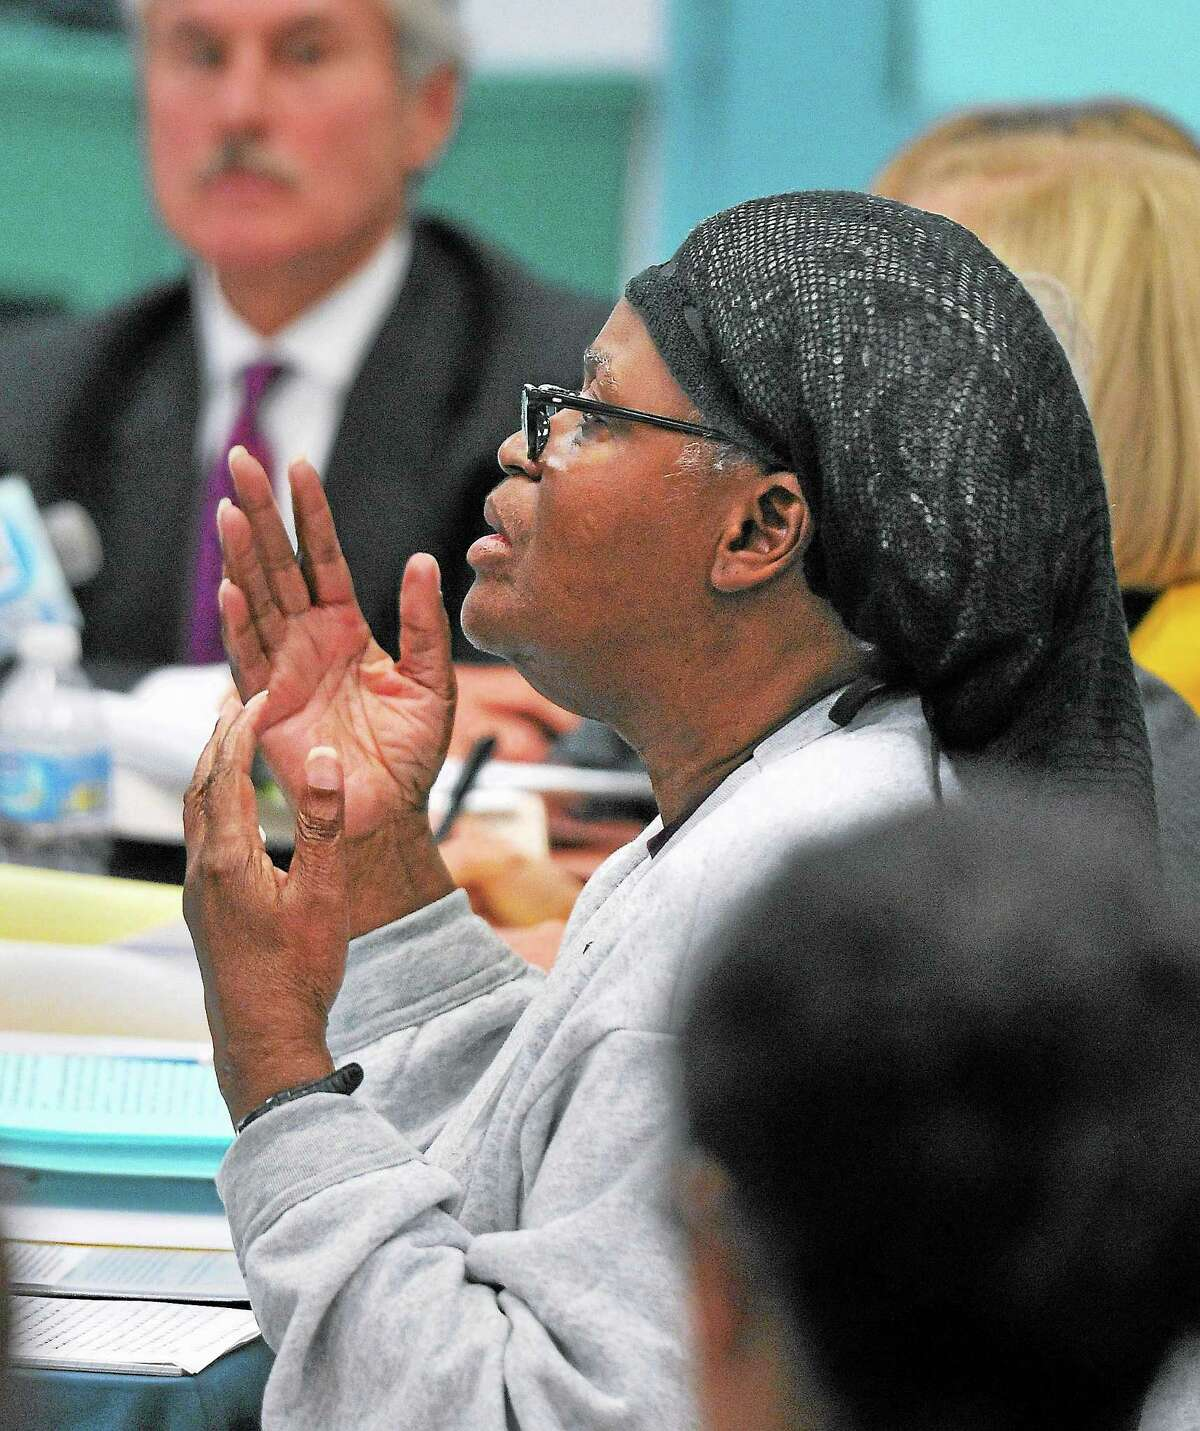 (Peter Casolino — New Haven Register) Bonnie Jean Foreshaw talks about the killing of Joyce Amos in 1986 to the Board of Pardons and Paroles during a hearing at the JB Gates Correctional Institution in Niantic. Foreshaw was granted clemency by the board and will be released in November. Foreshaw was originally given a 45-year sentence, the longest given to a woman in Connecticut .